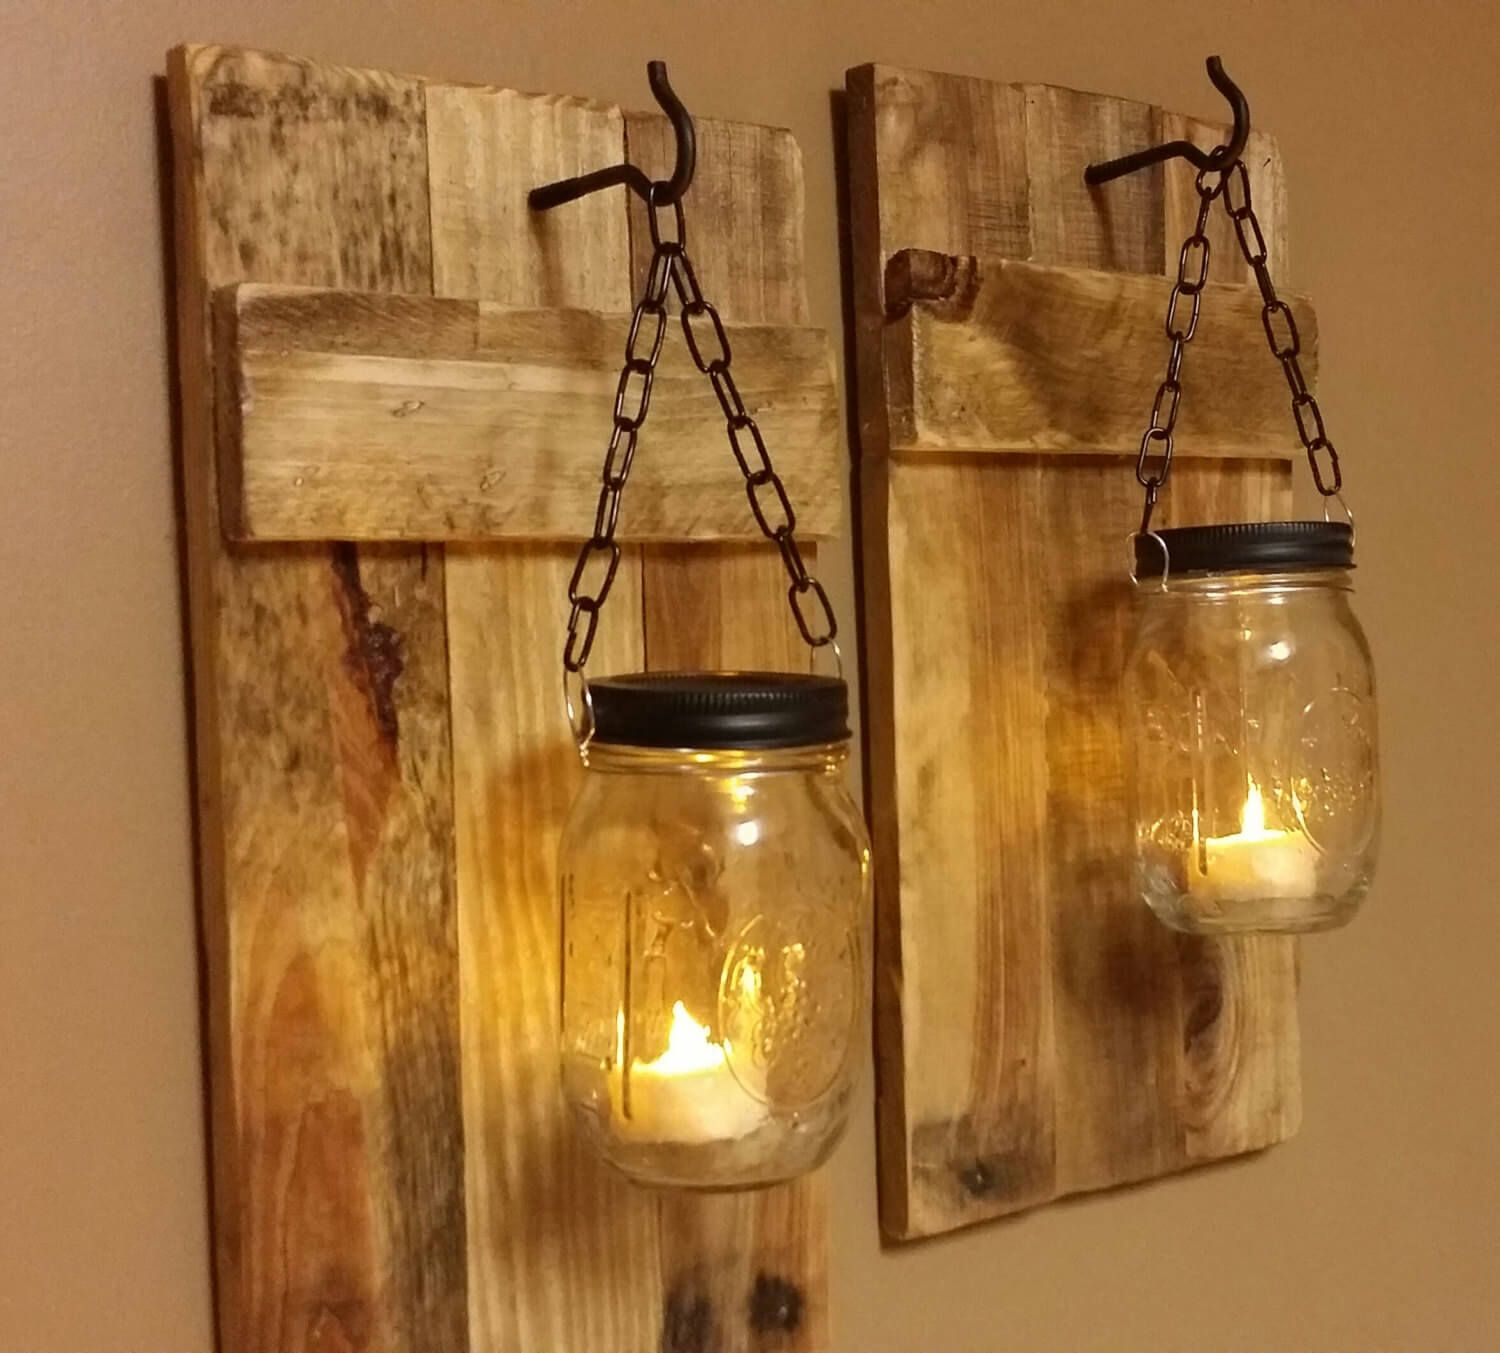 Rustic home decor ideas, DIY, design, projects, country